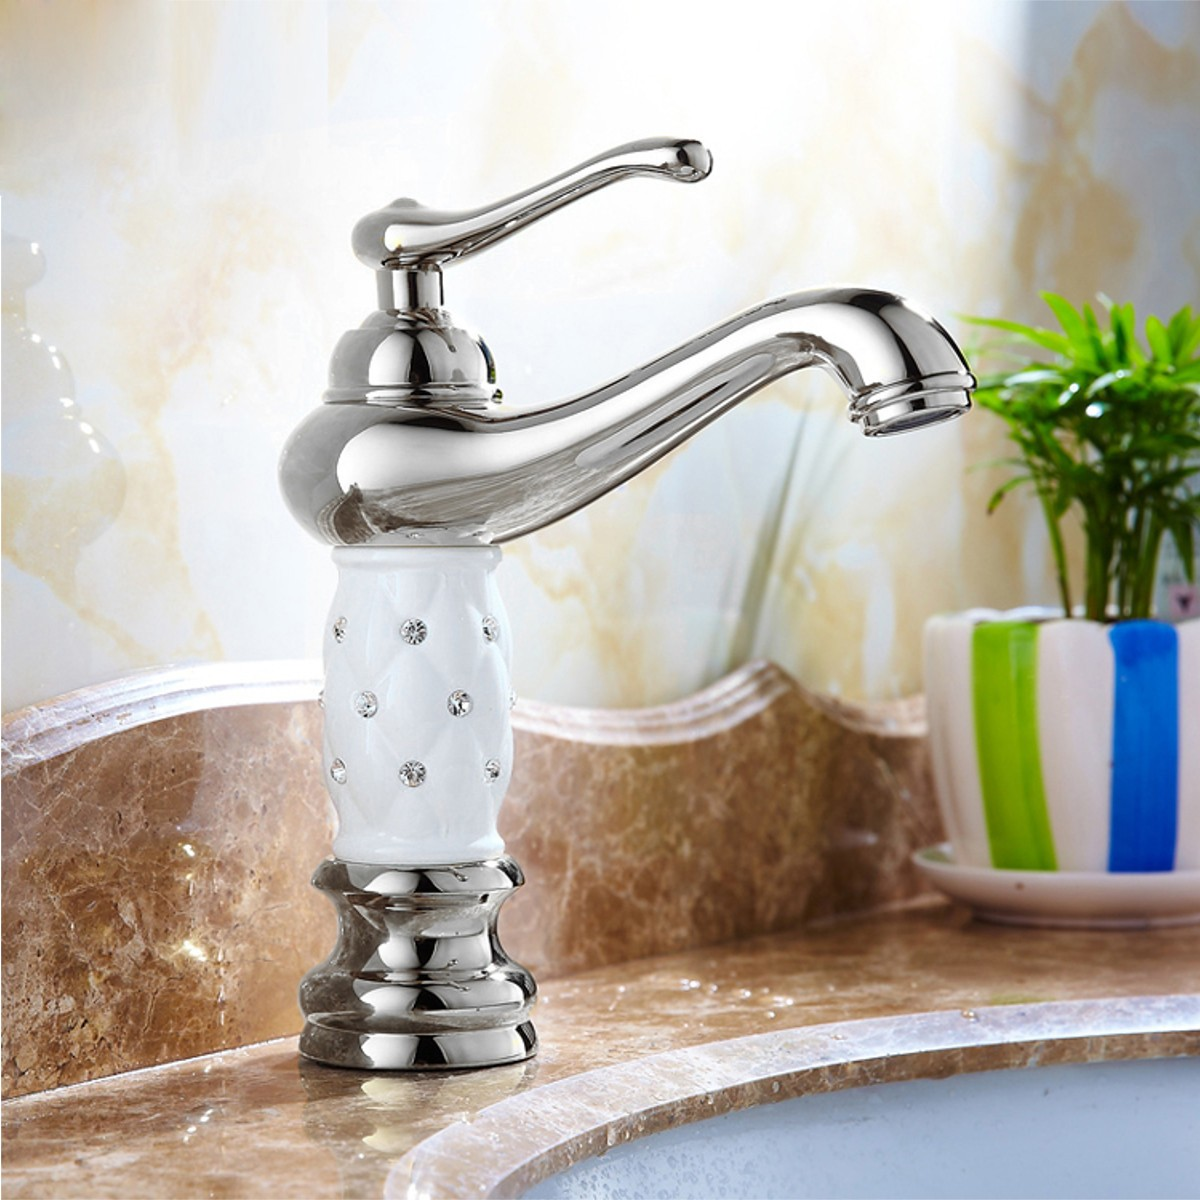 Küche Wasserhahn Landhaus Brass Faucet Mixer Tap Waterfall Brass Finish Single Handle Bathroom Basin Sink